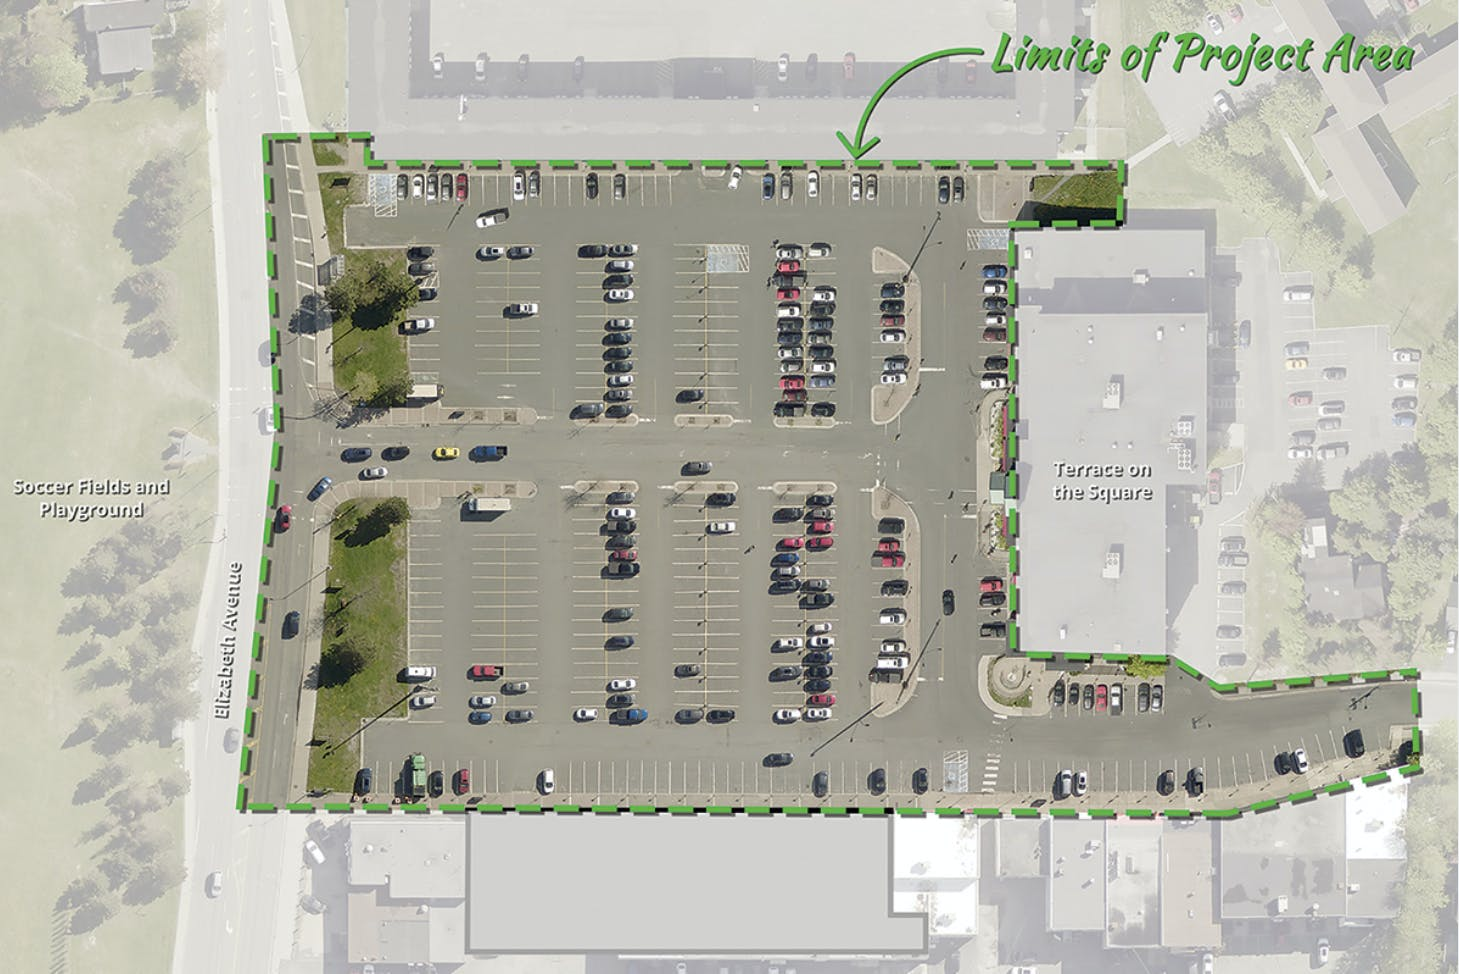 Churchill Square project limits are shown in this image taken from the City of St. John's engagestjohns.ca website.